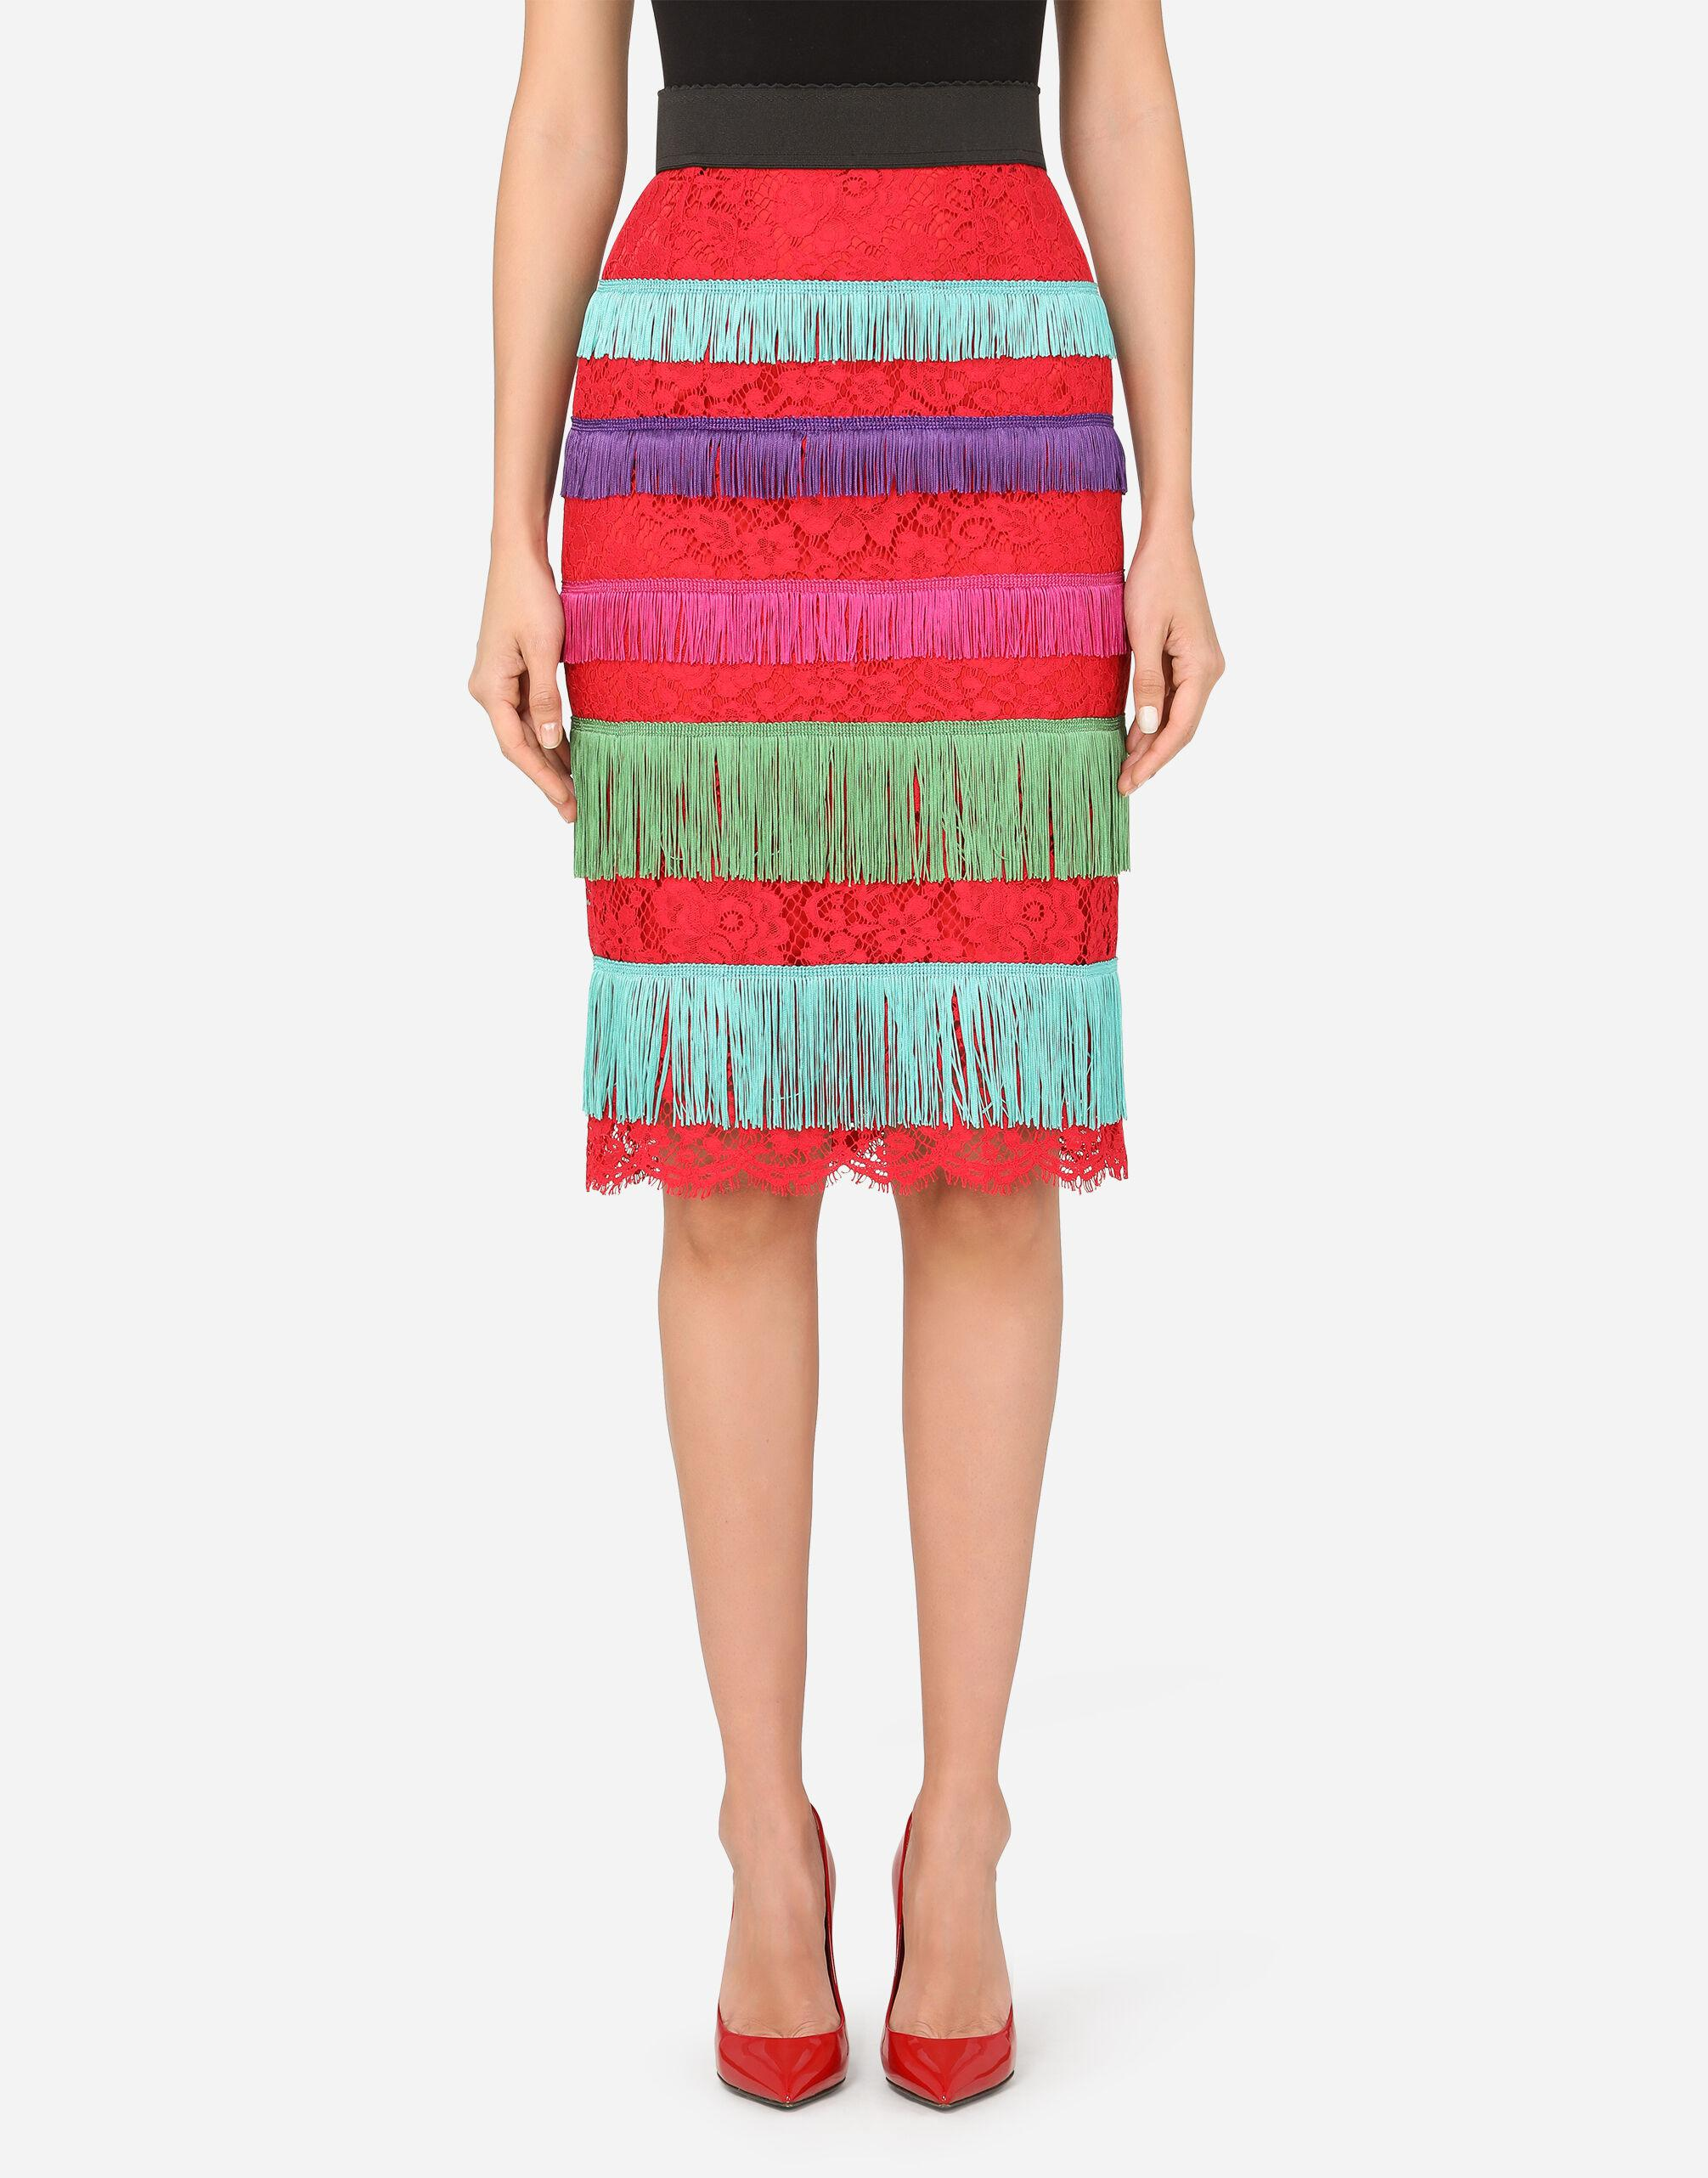 Lace midi skirt with fringed detailing